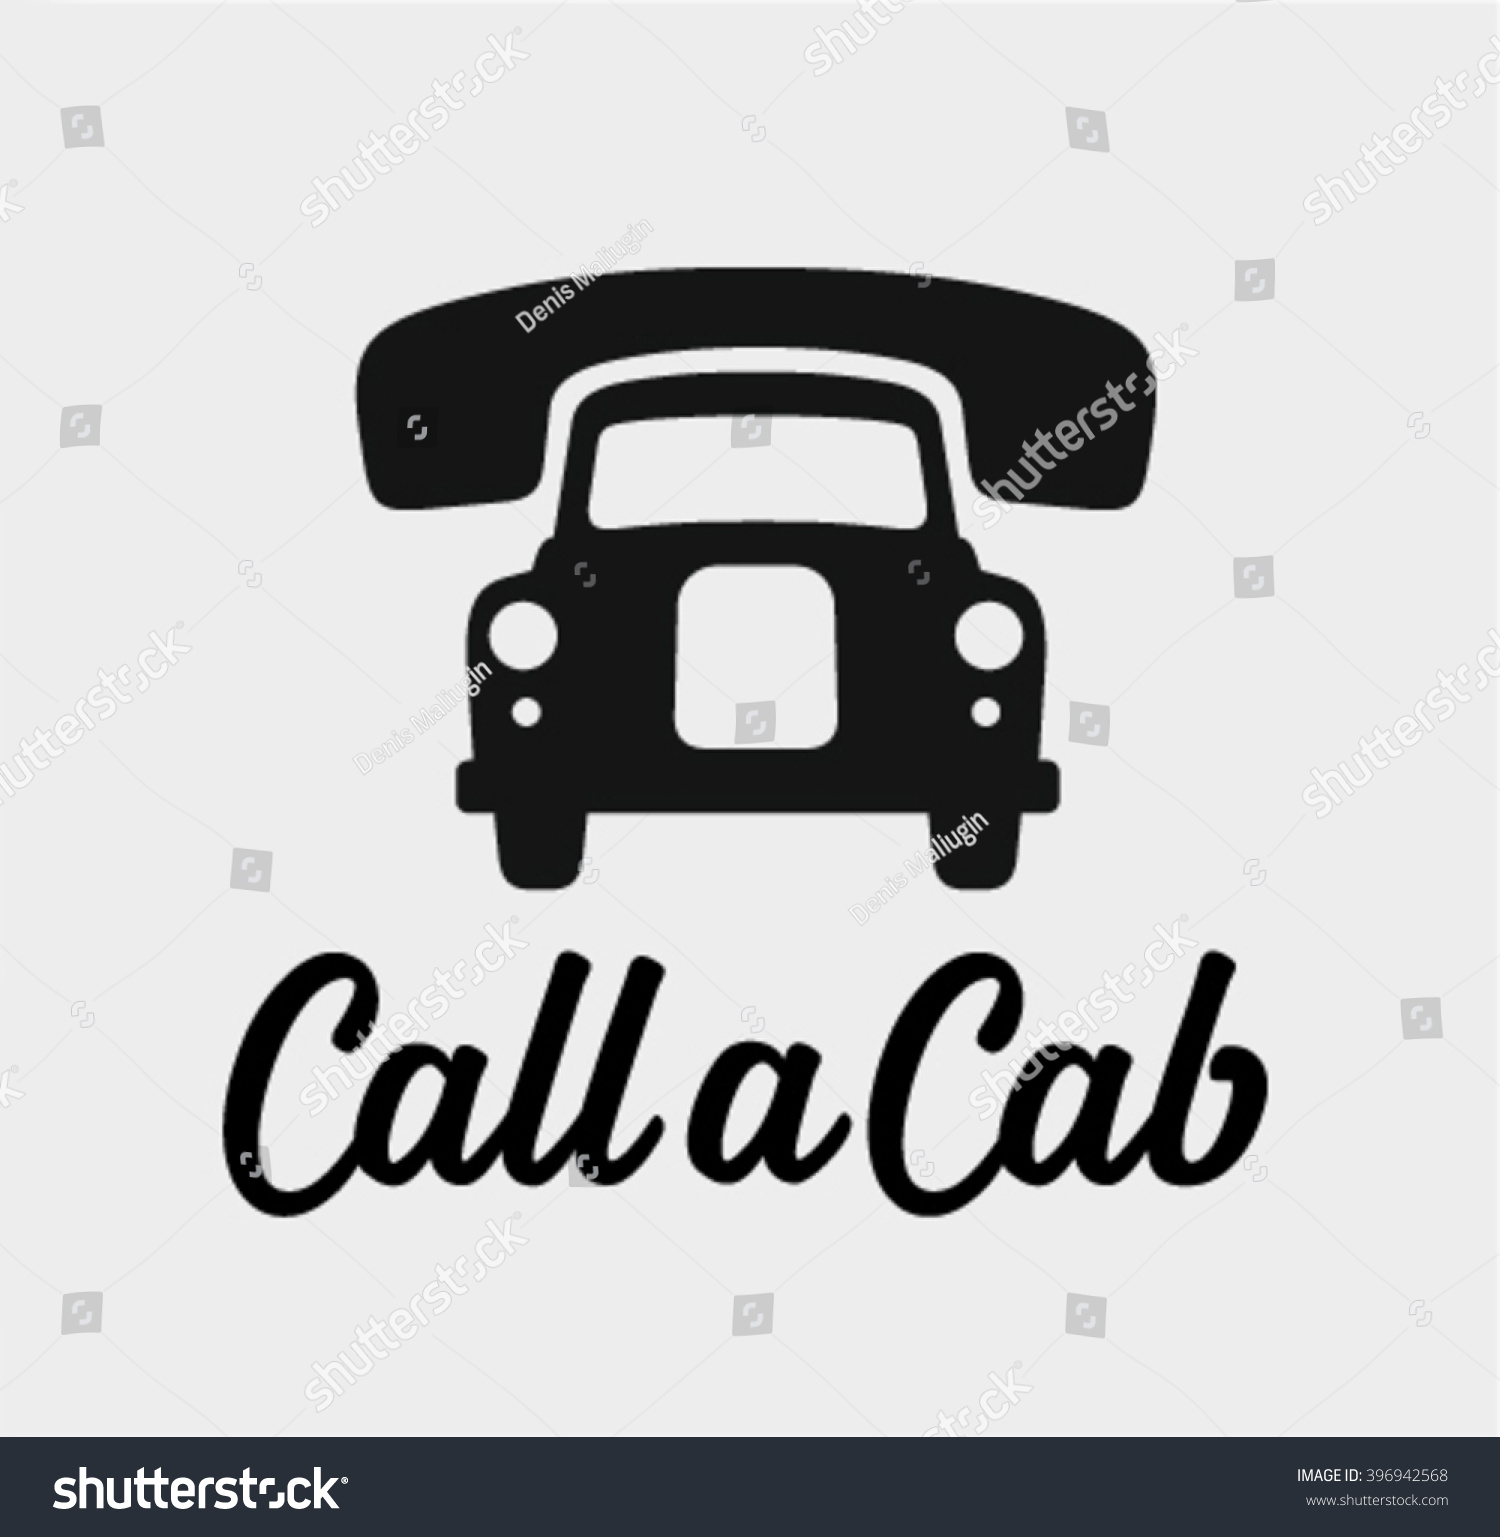 Call cab taxi service icon cause stock vector 396942568 shutterstock - Order a cab ...